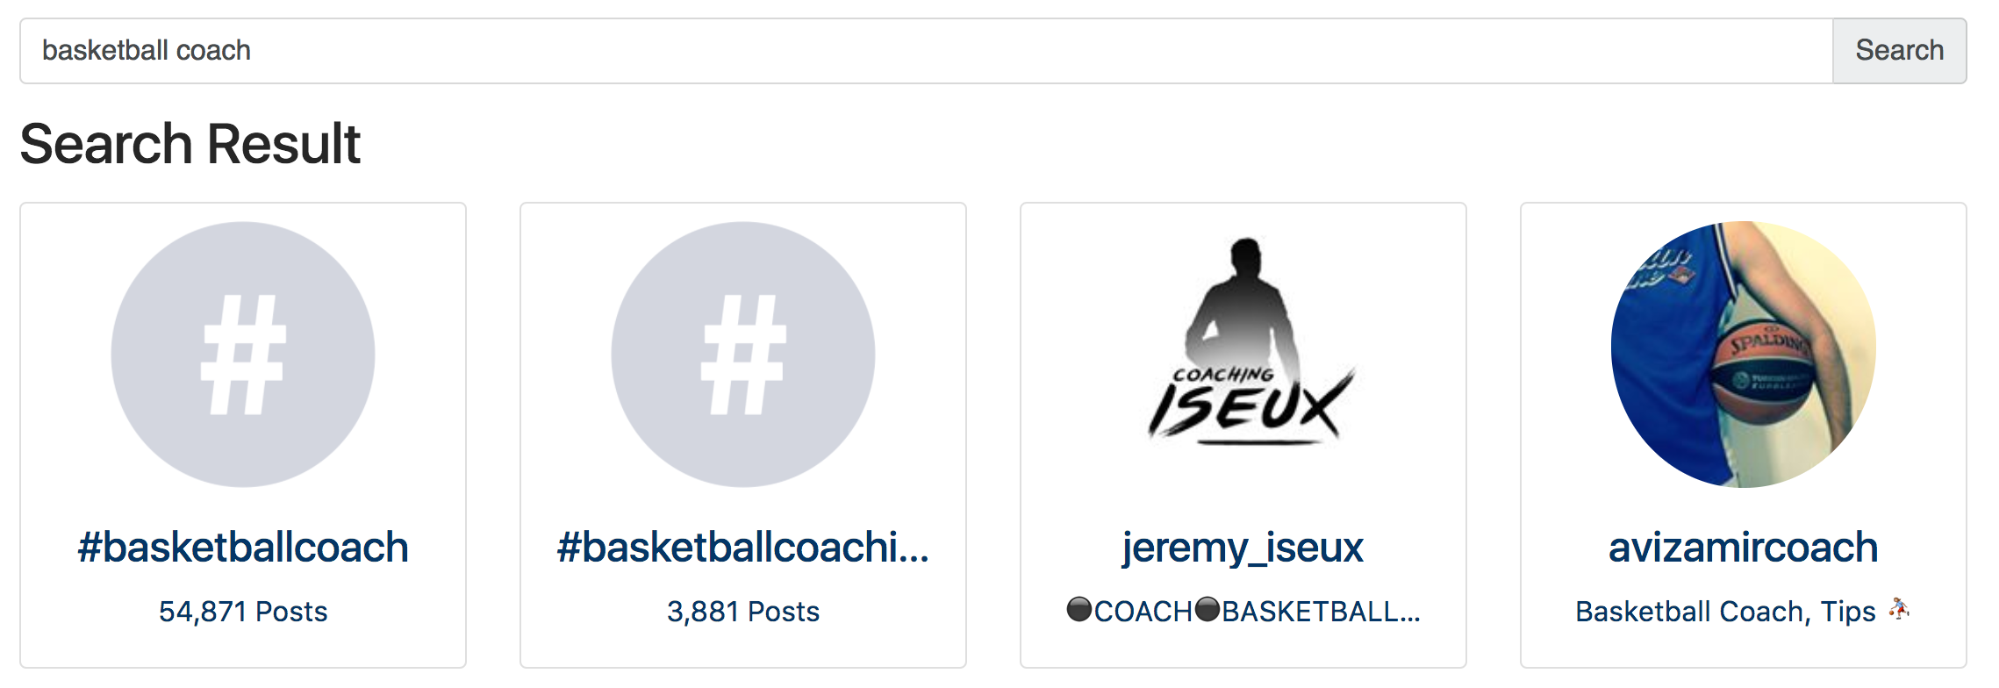 Screenshot showing search results for basketball coach